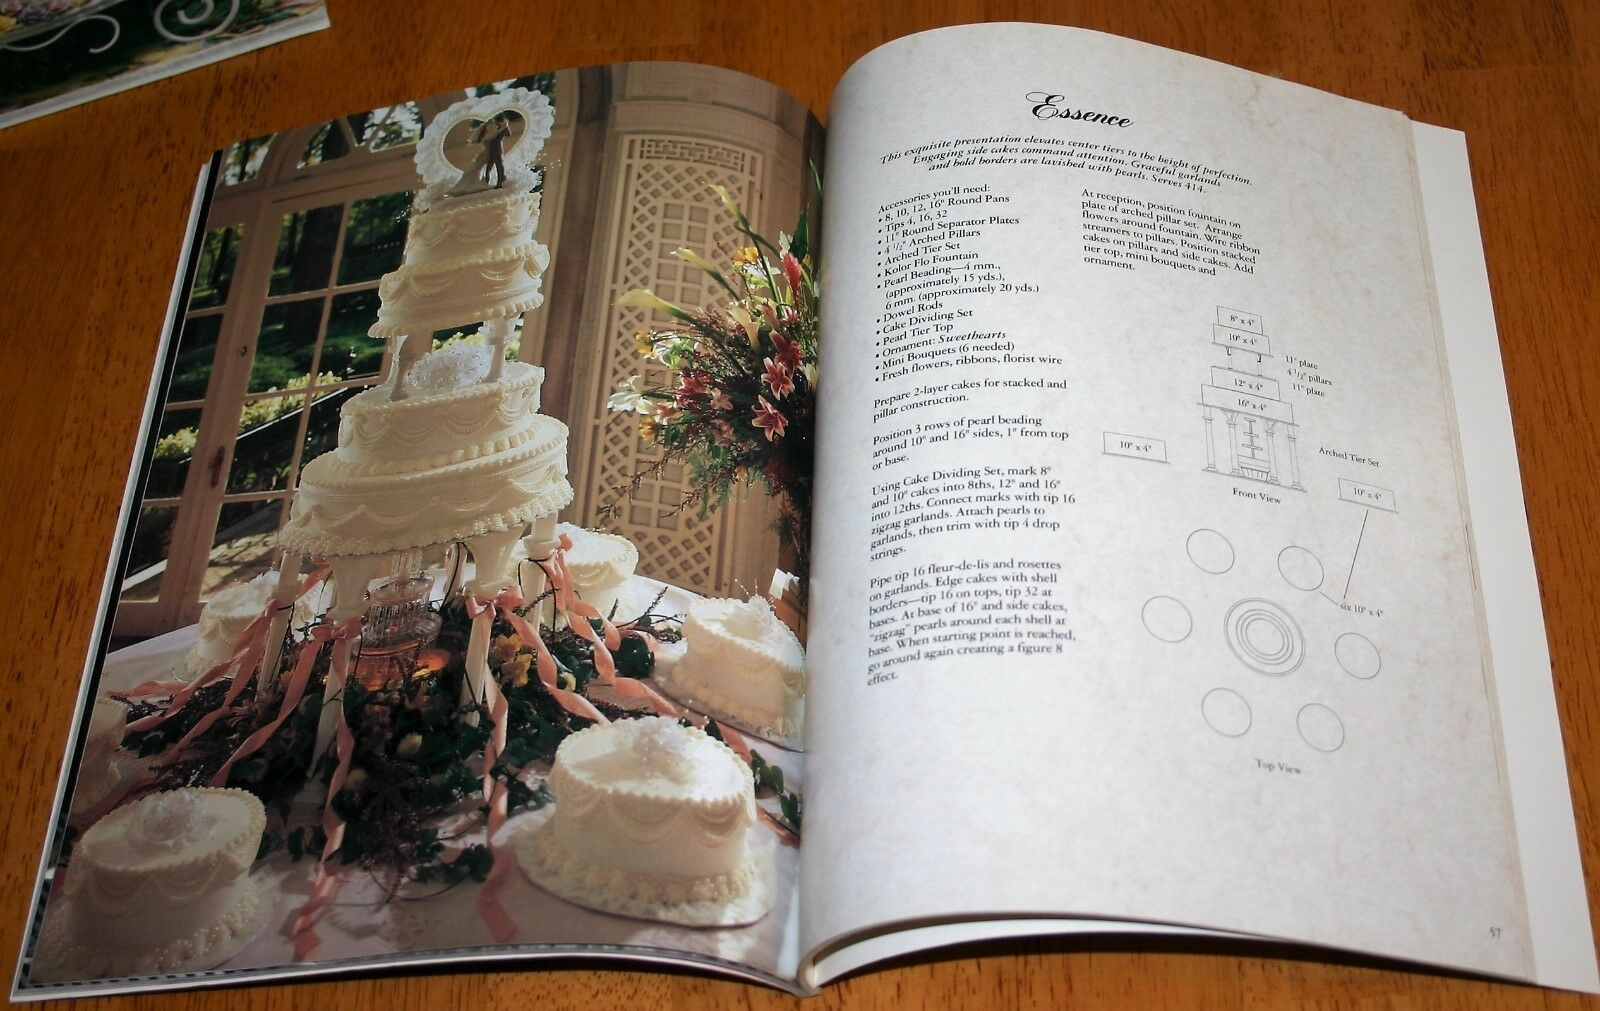 The Best A Treasury Of Wilton Wedding Cakes-how To Book 1991 Home & Garden Baking Accs. & Cake Decorating